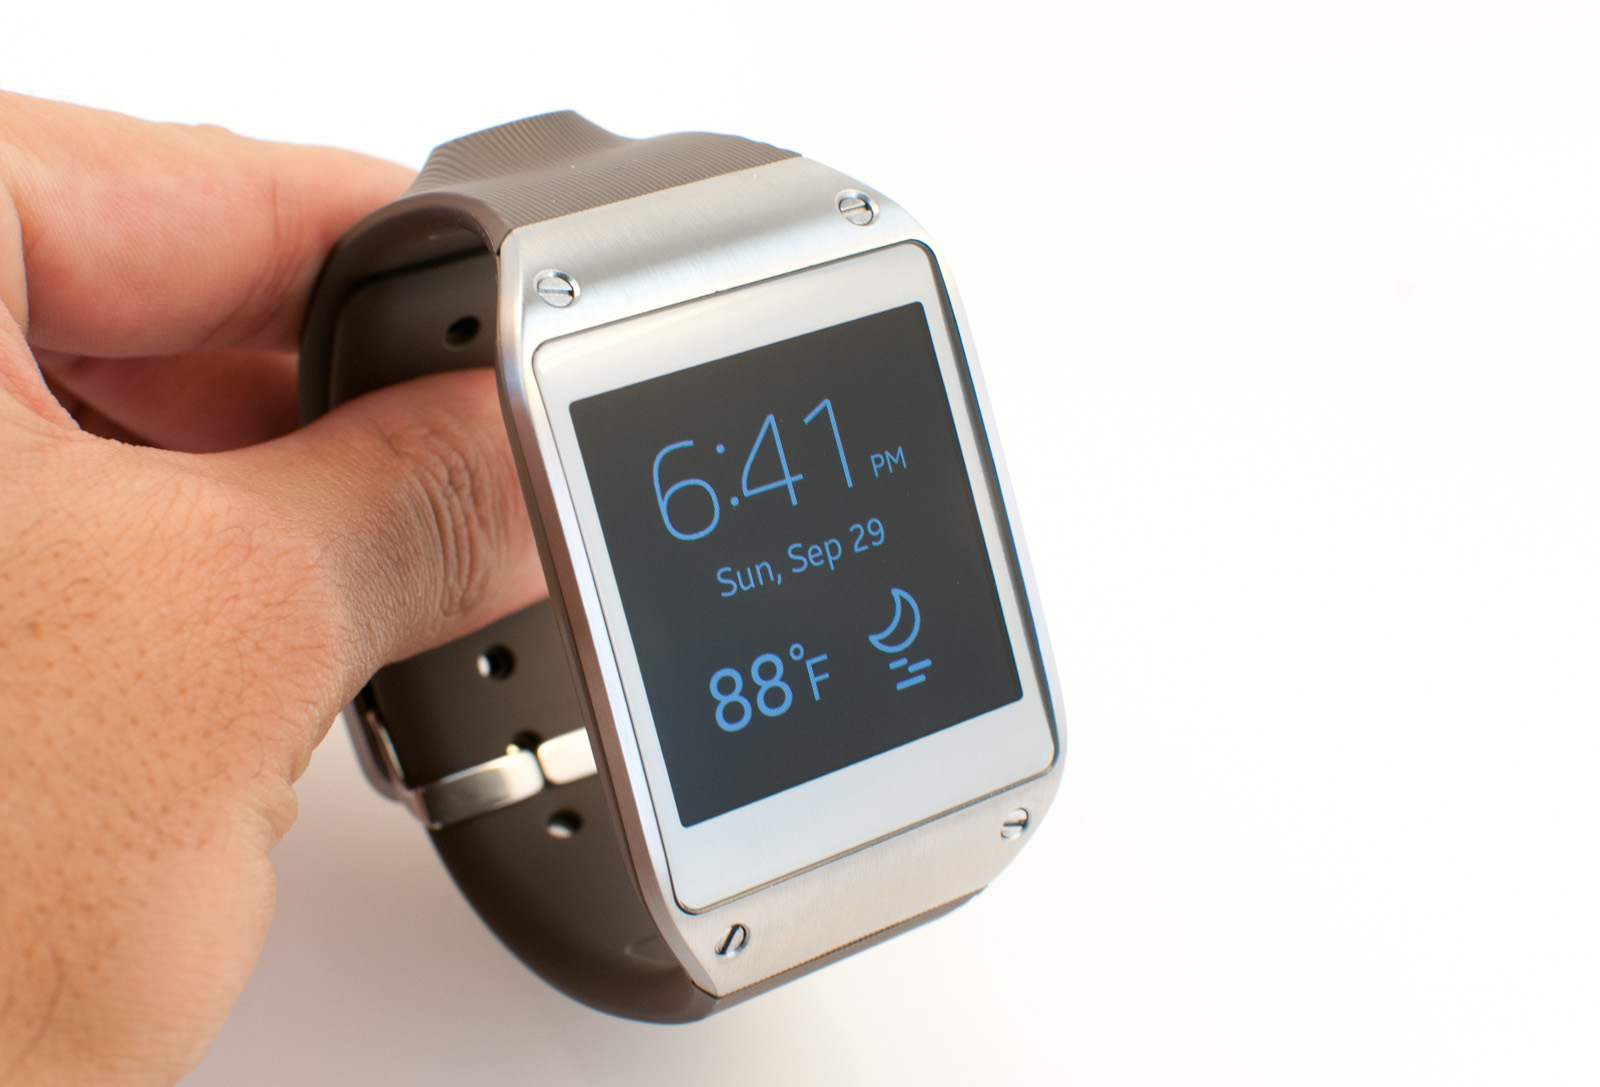 Camera Samsung Android Watch Phone samsung galaxy gear review this has happened before and all of it will happen again